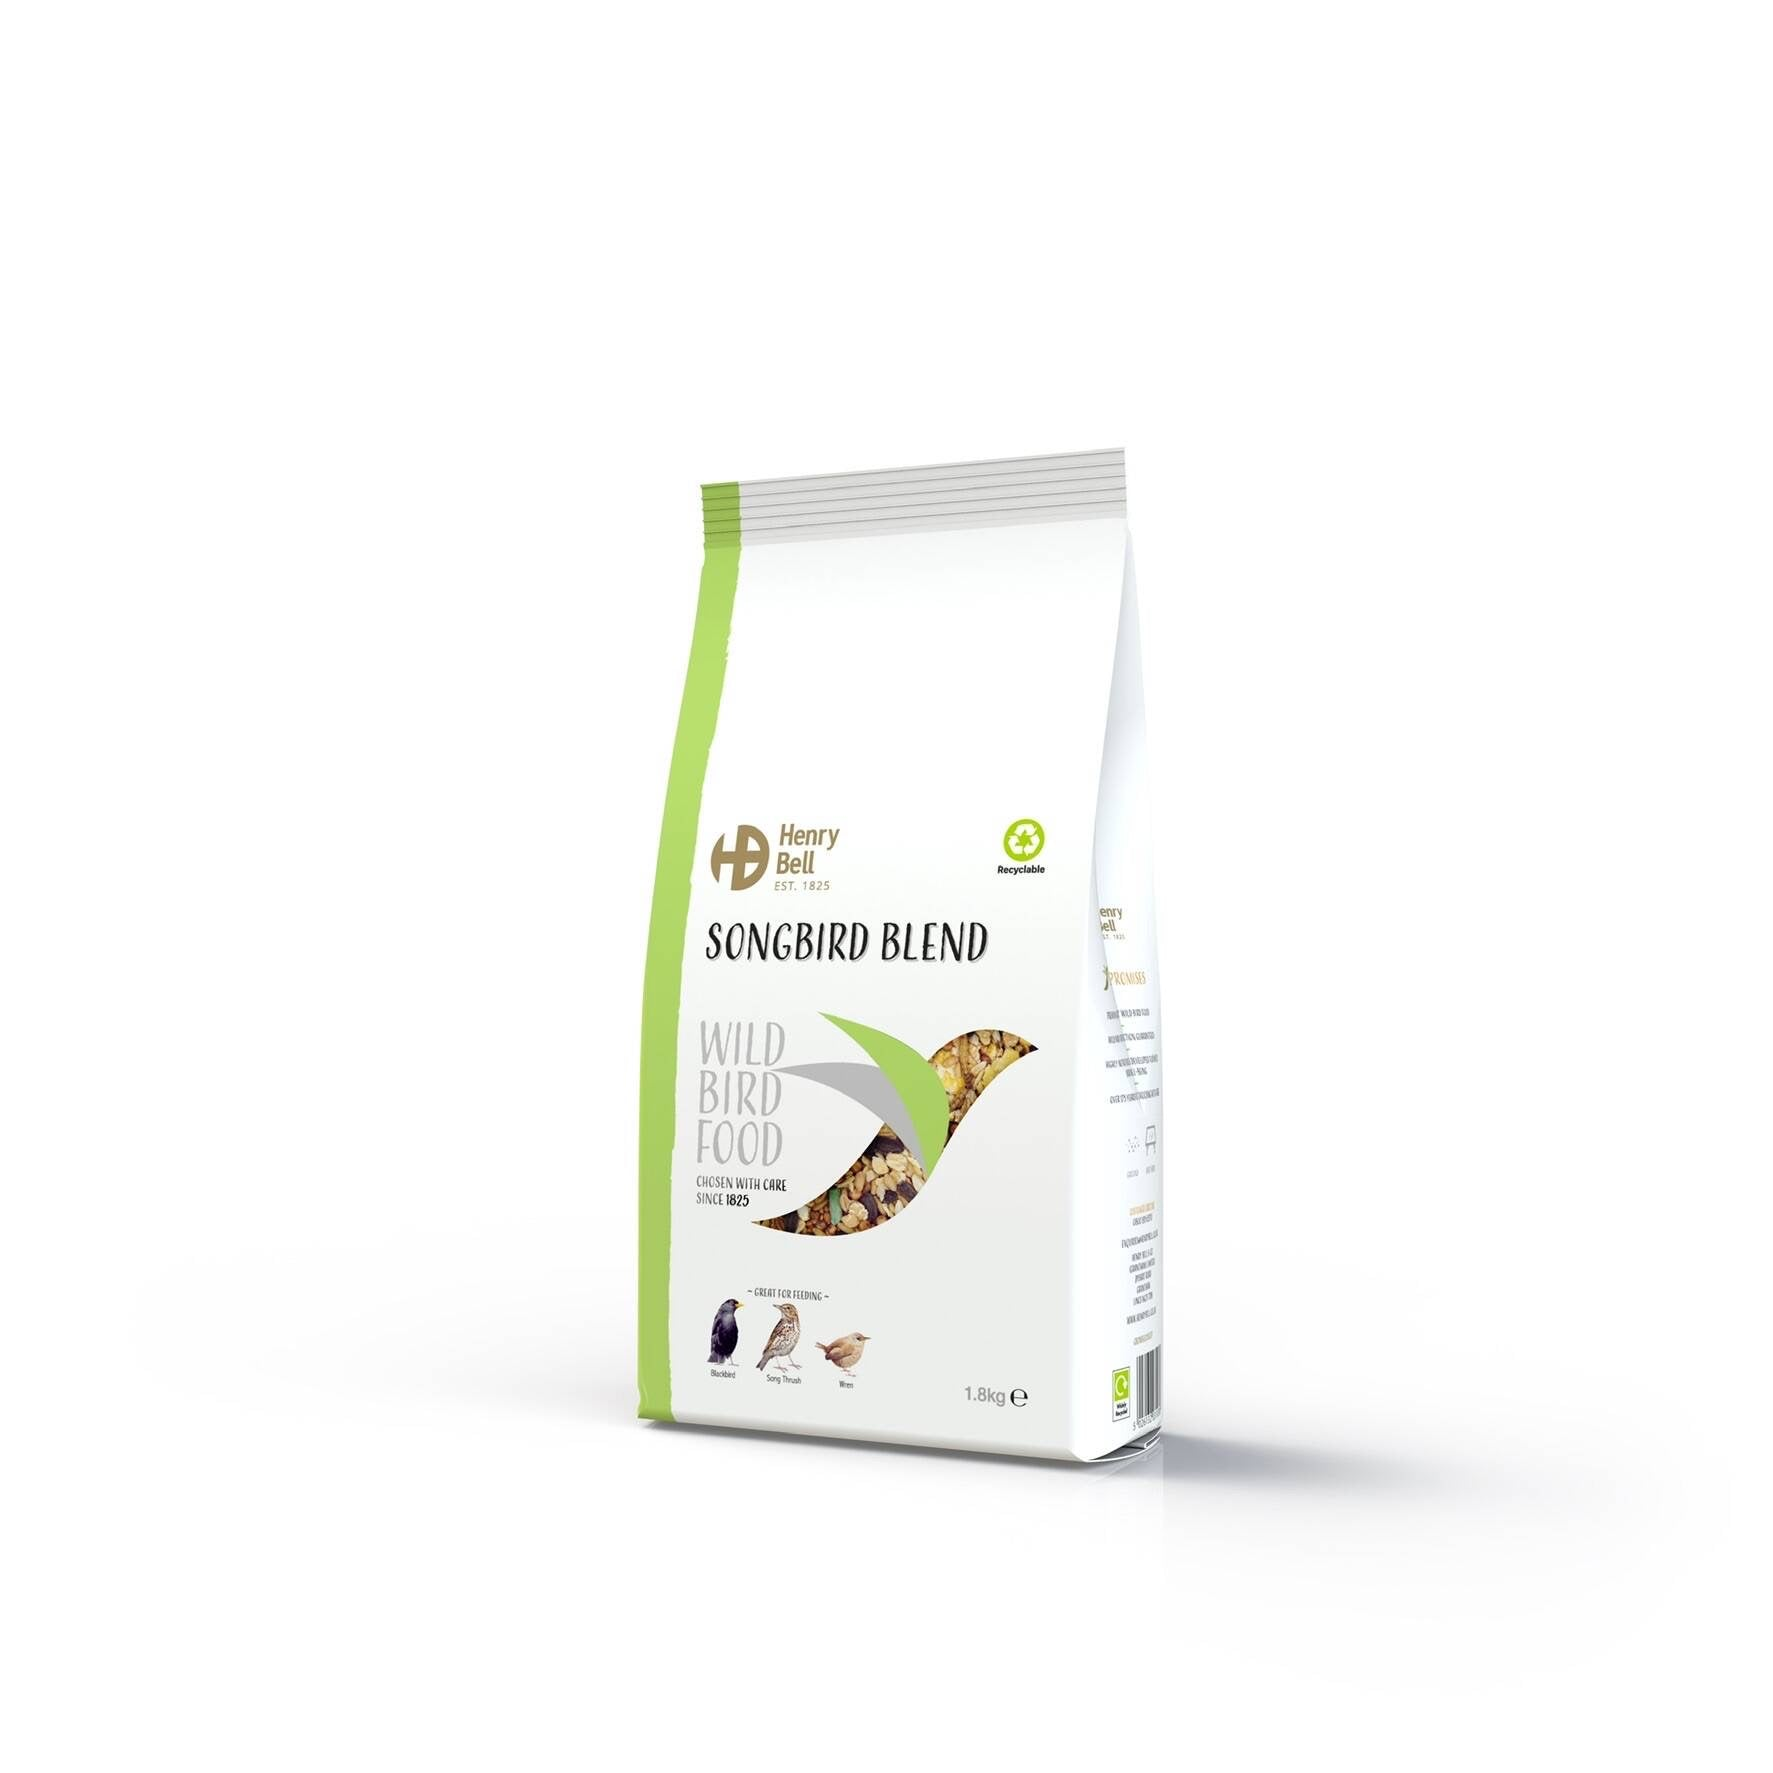 Henry Bell Songbird Blend Wild Bird Food 1.8kg